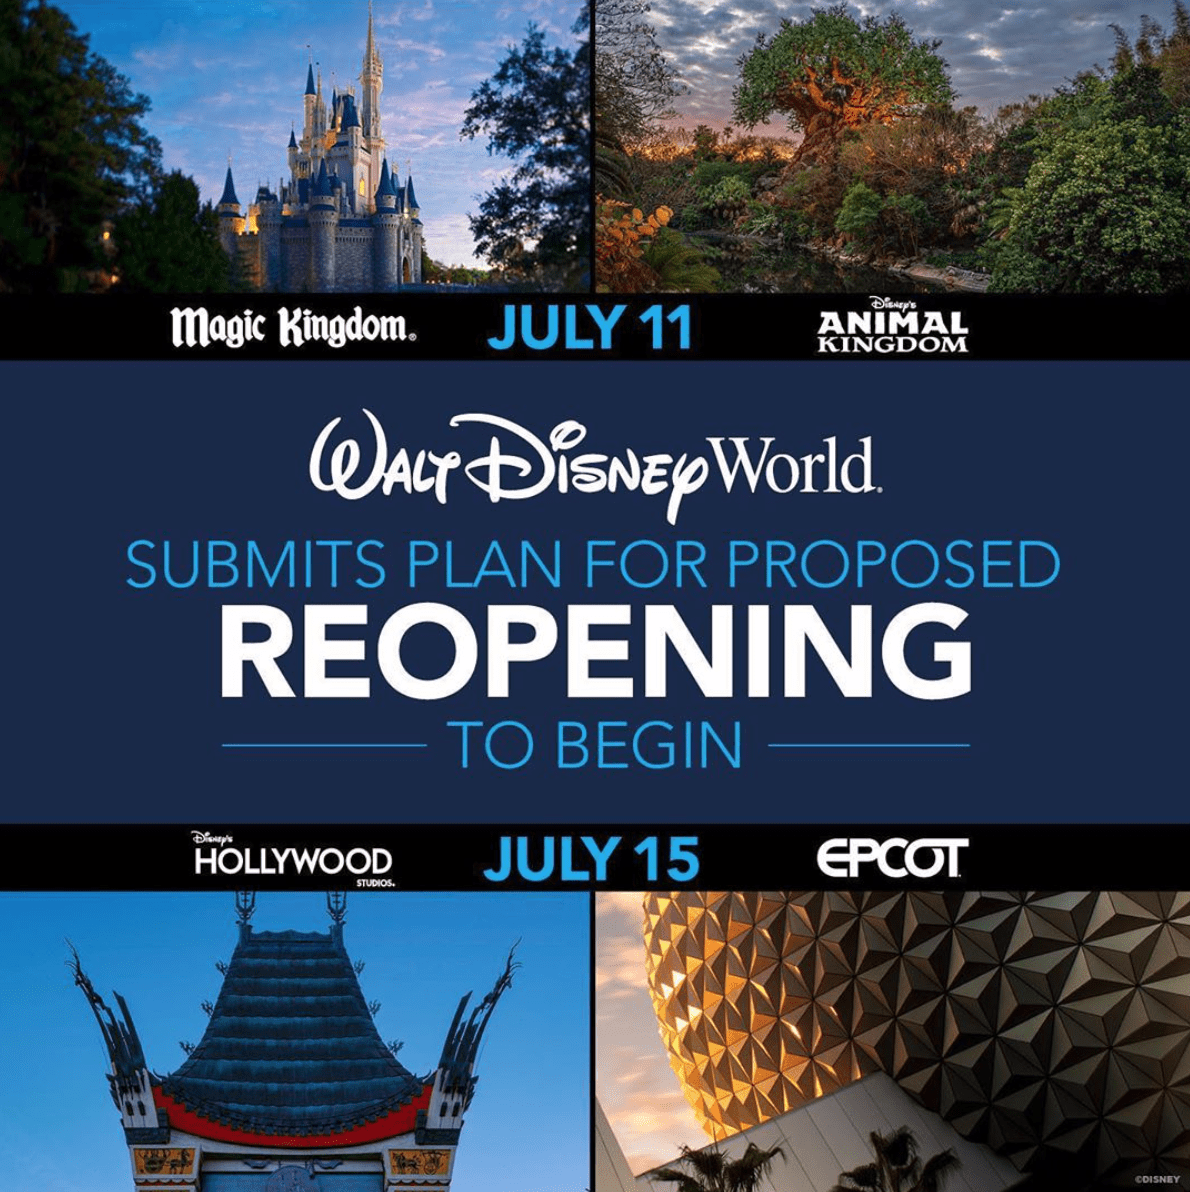 WDW Reopening in July